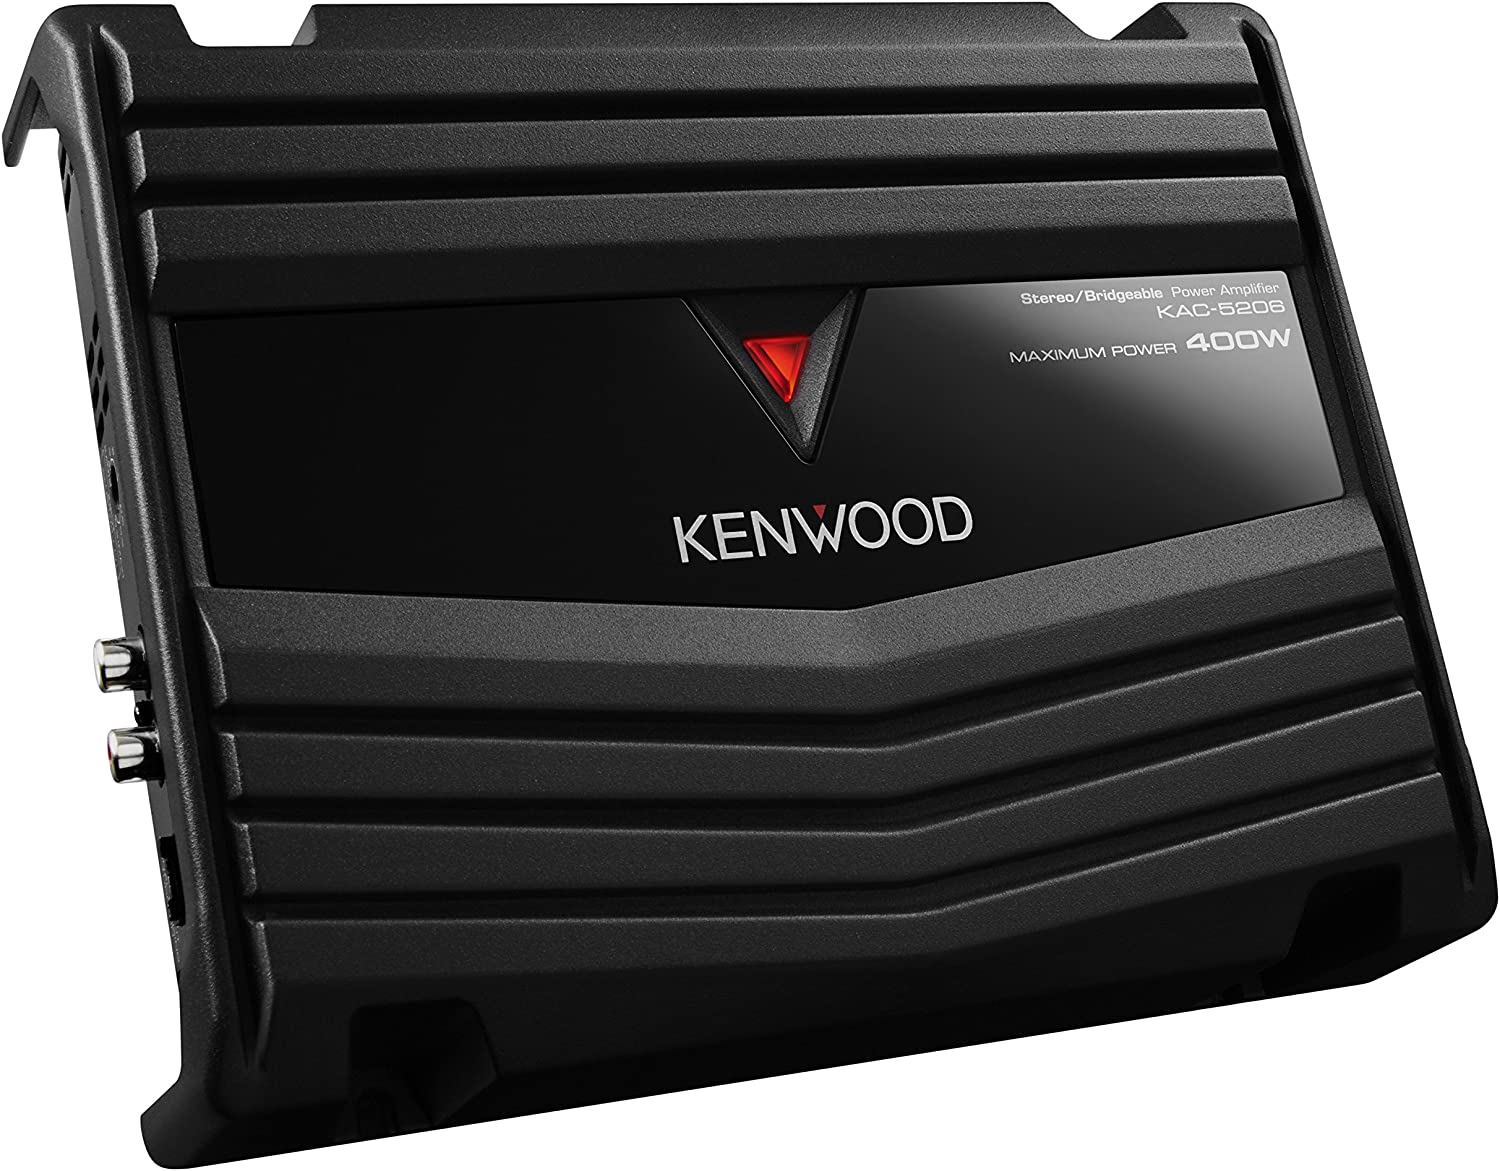 Amplificador estéreo/puenteable Kenwood KAC-5206: Amazon.es ...